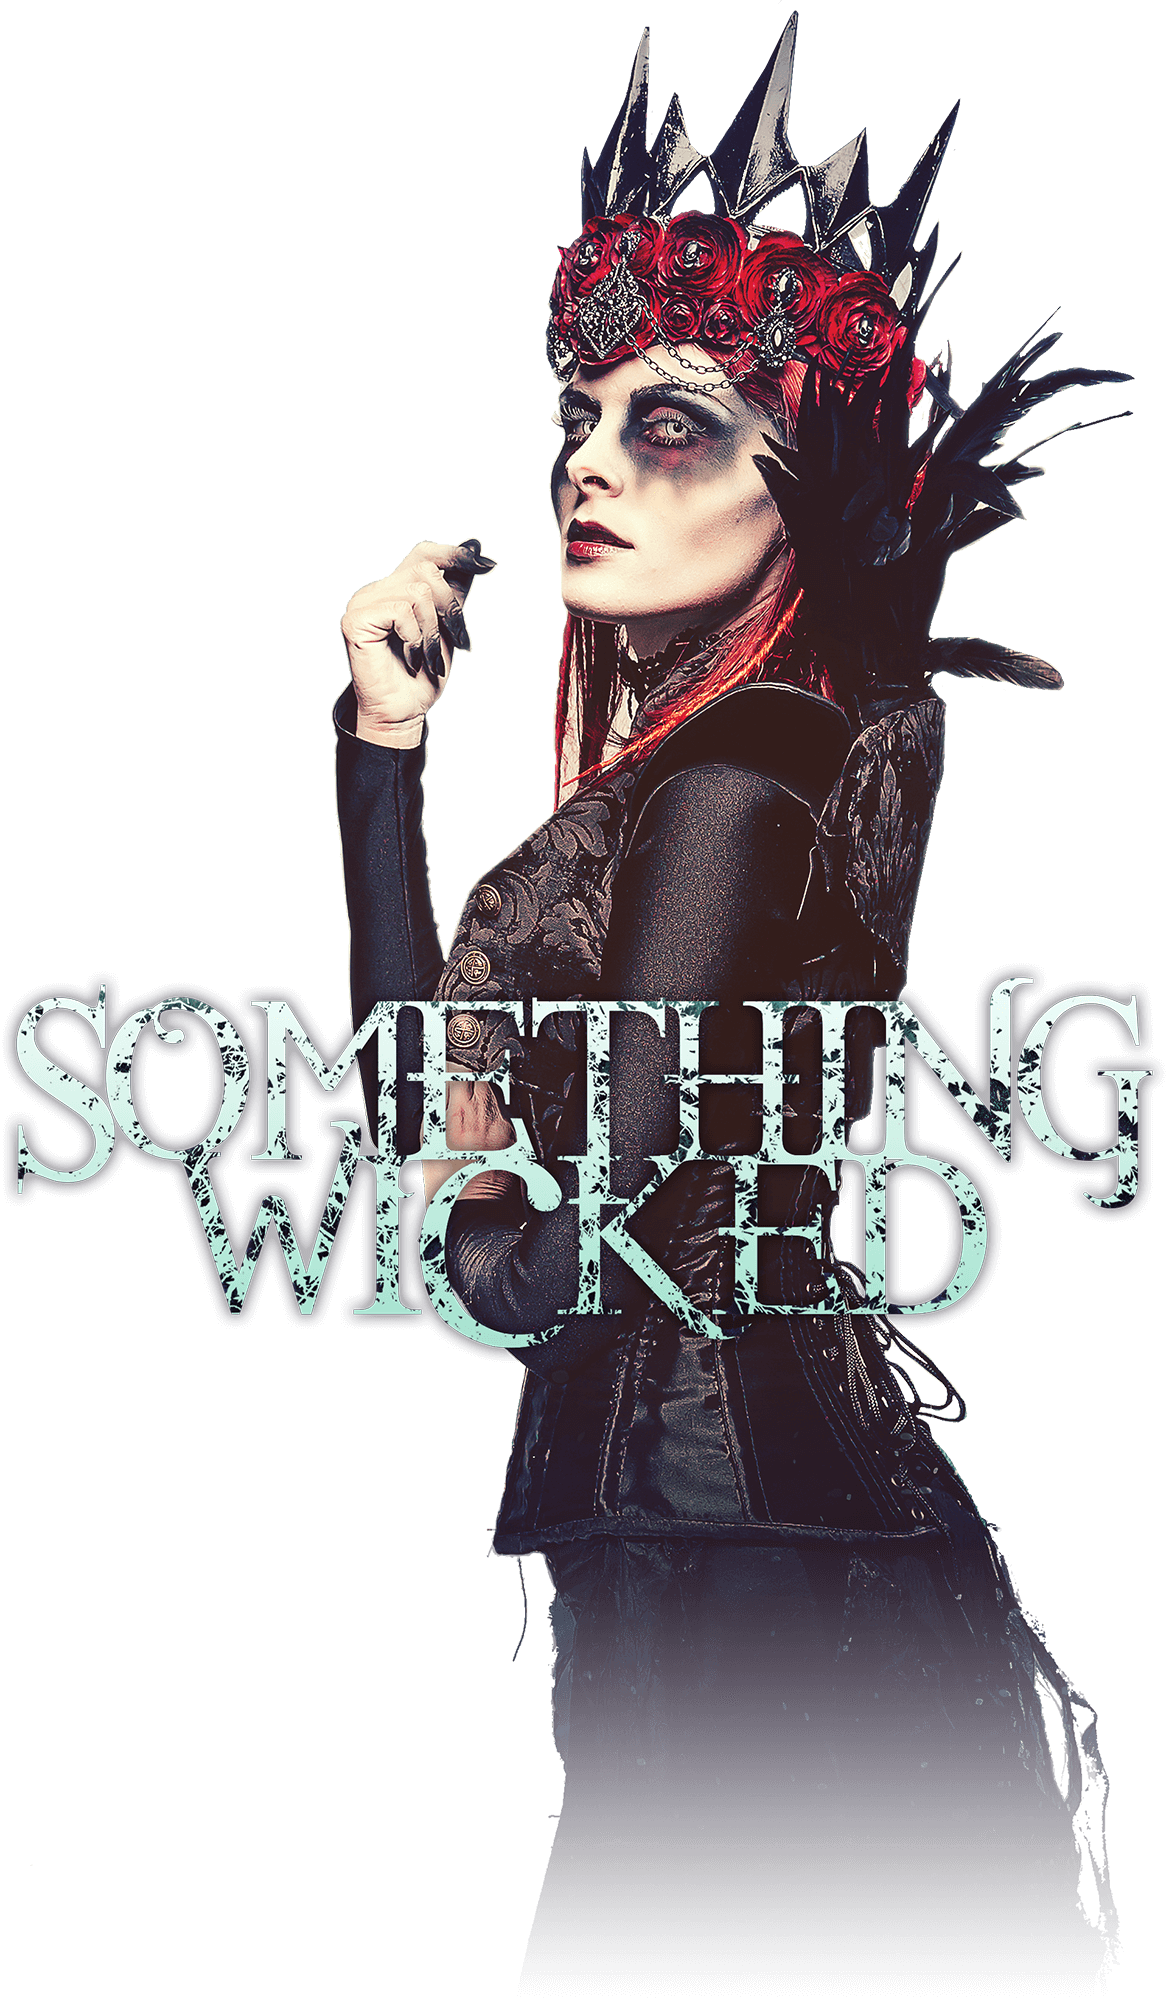 High Resolution Wallpaper | Wicked 1169x2000 px